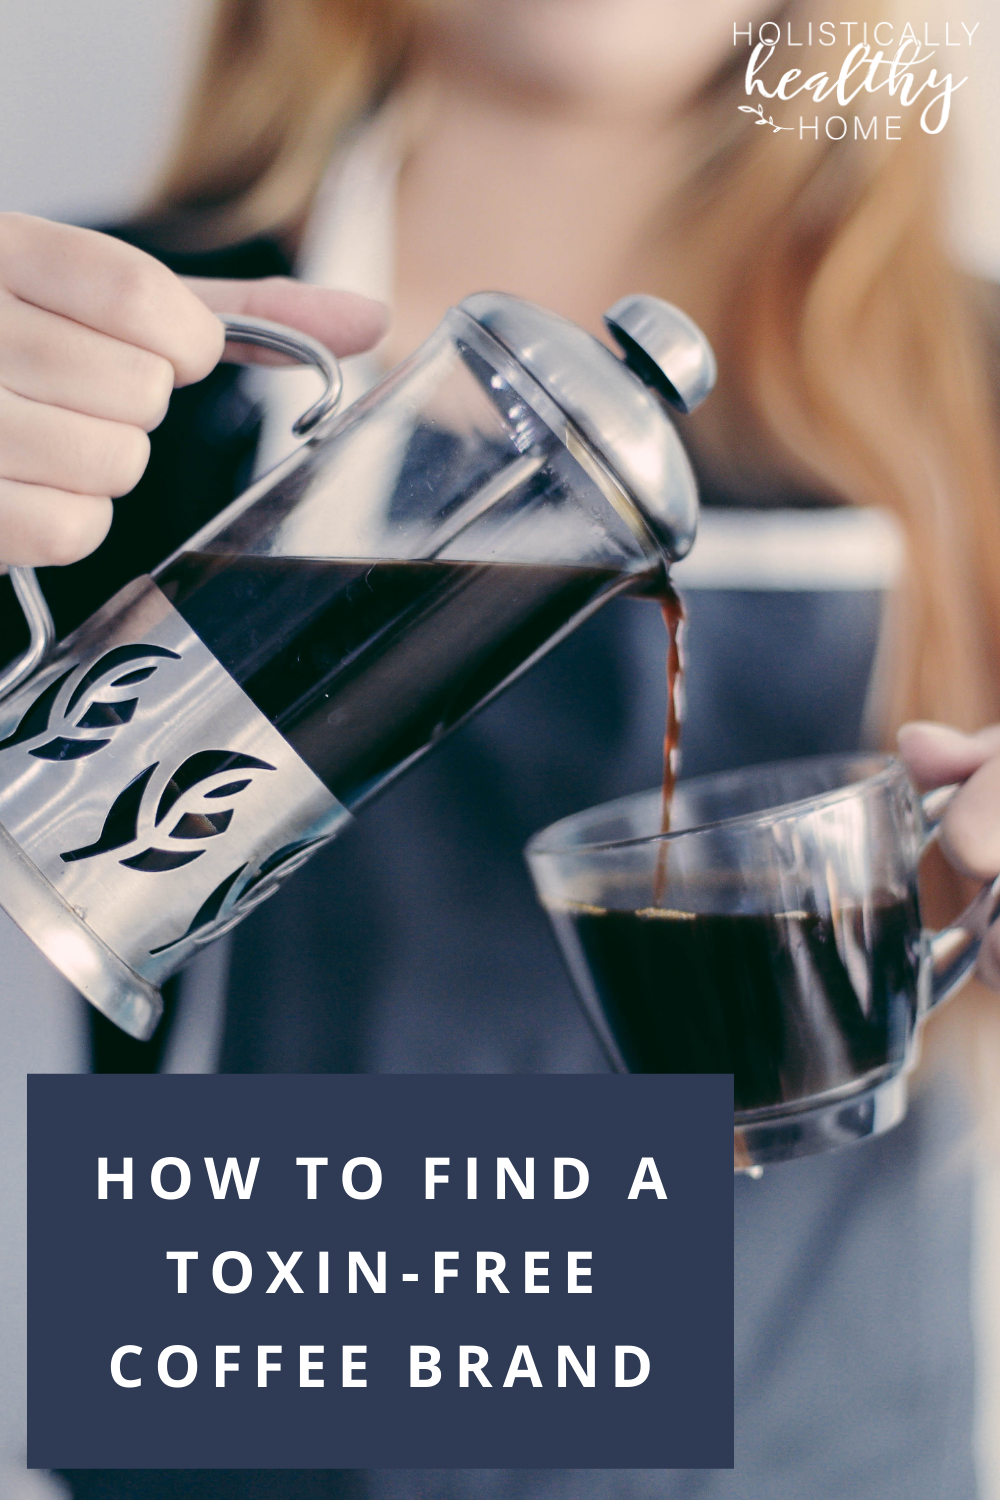 How to find a toxin-free coffee brand. #toxinfreecoffee #cleancoffee #moldfreecoffee #childlaborfreecoffee #organiccoffee